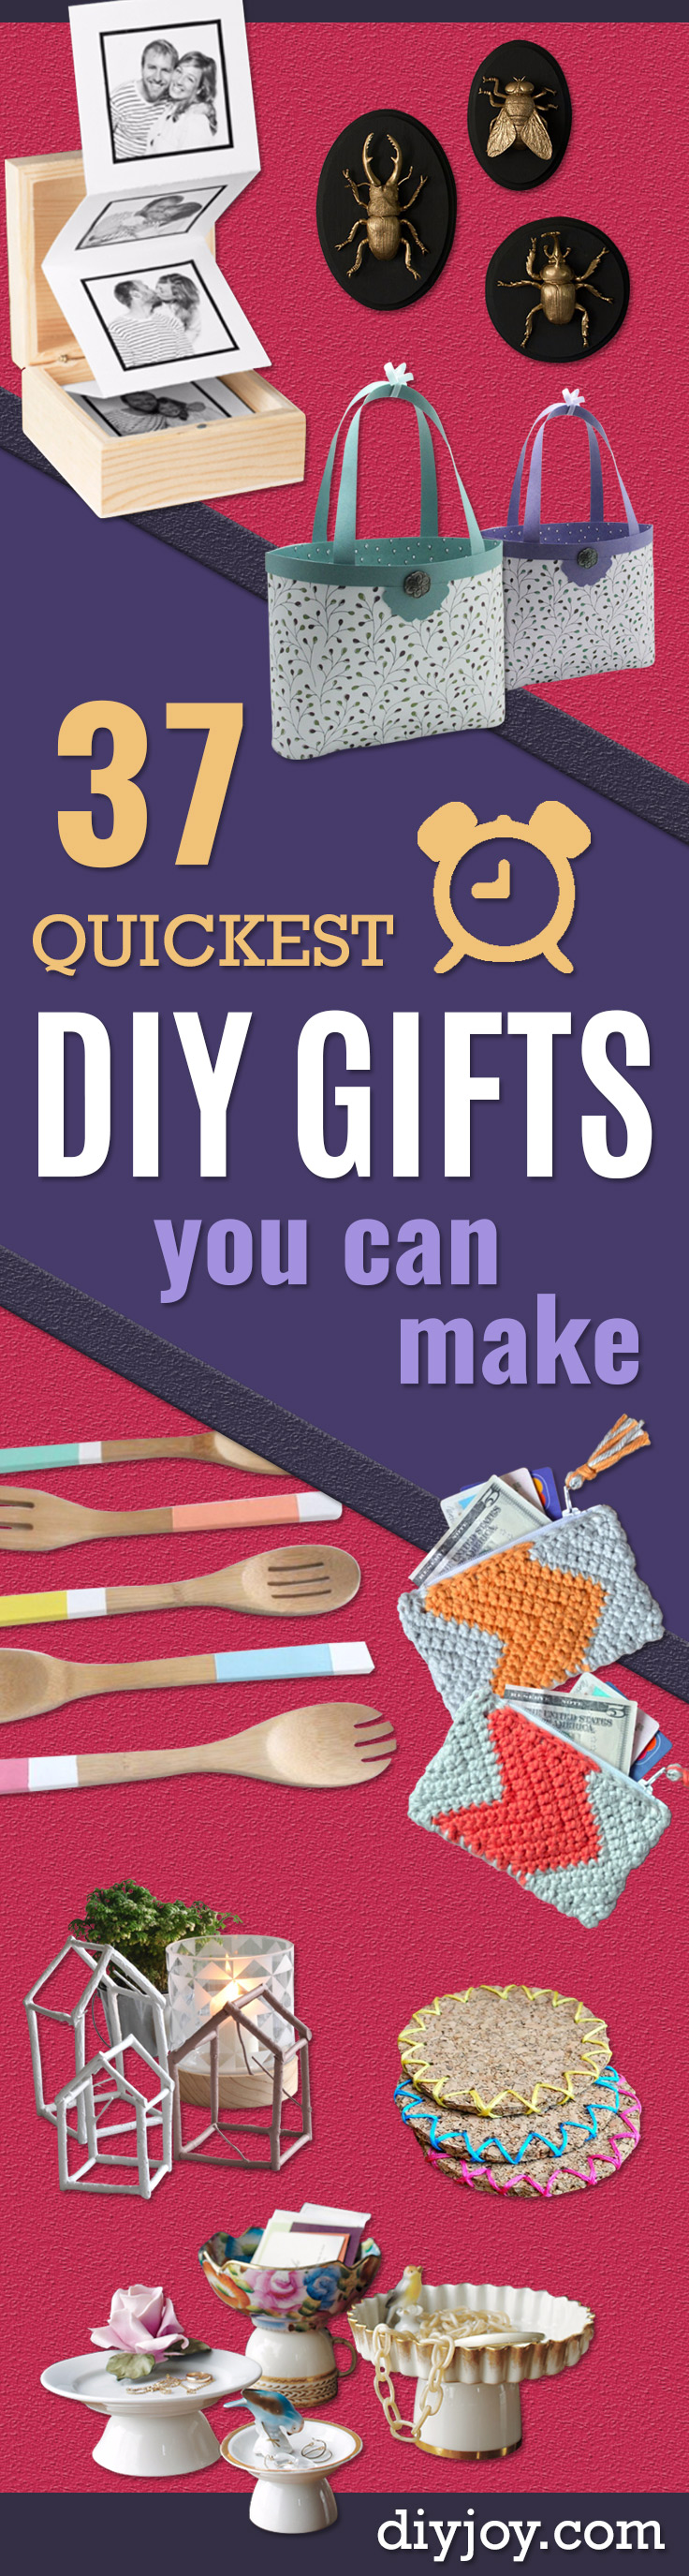 Quick DIY Gifts To Make - Easy Homemade Presents - Fast Last Minute DIY Gift Ideas for Mom, Dad, Him or Her, Freinds, Teens, Kids, Girls and Boys. Fast Crafts and Fun Ideas in A Jar, Birthday Presents - Step by Step Tutorials